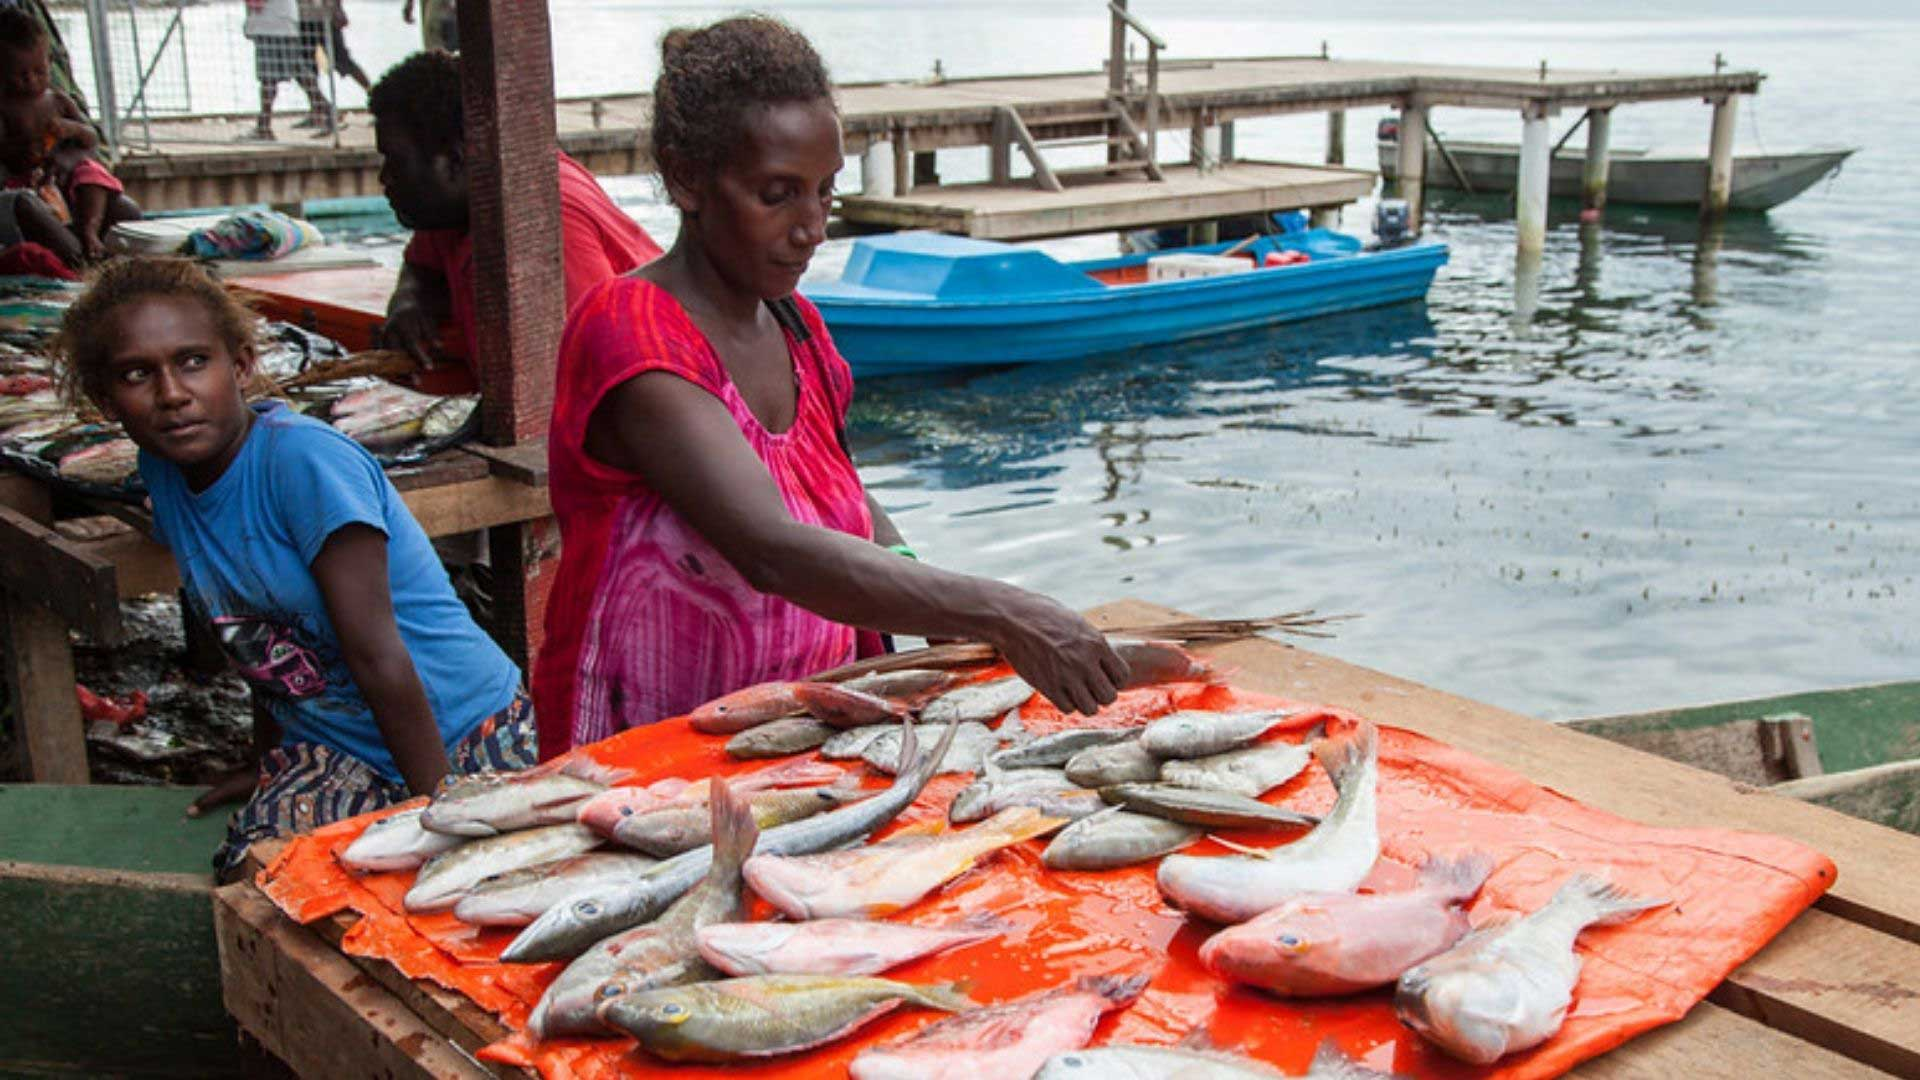 Women with reef fish for sale at Gizo market, by the ocean, Western Province, Solomon Islands. Photo by Filip Milovac, WorldFish